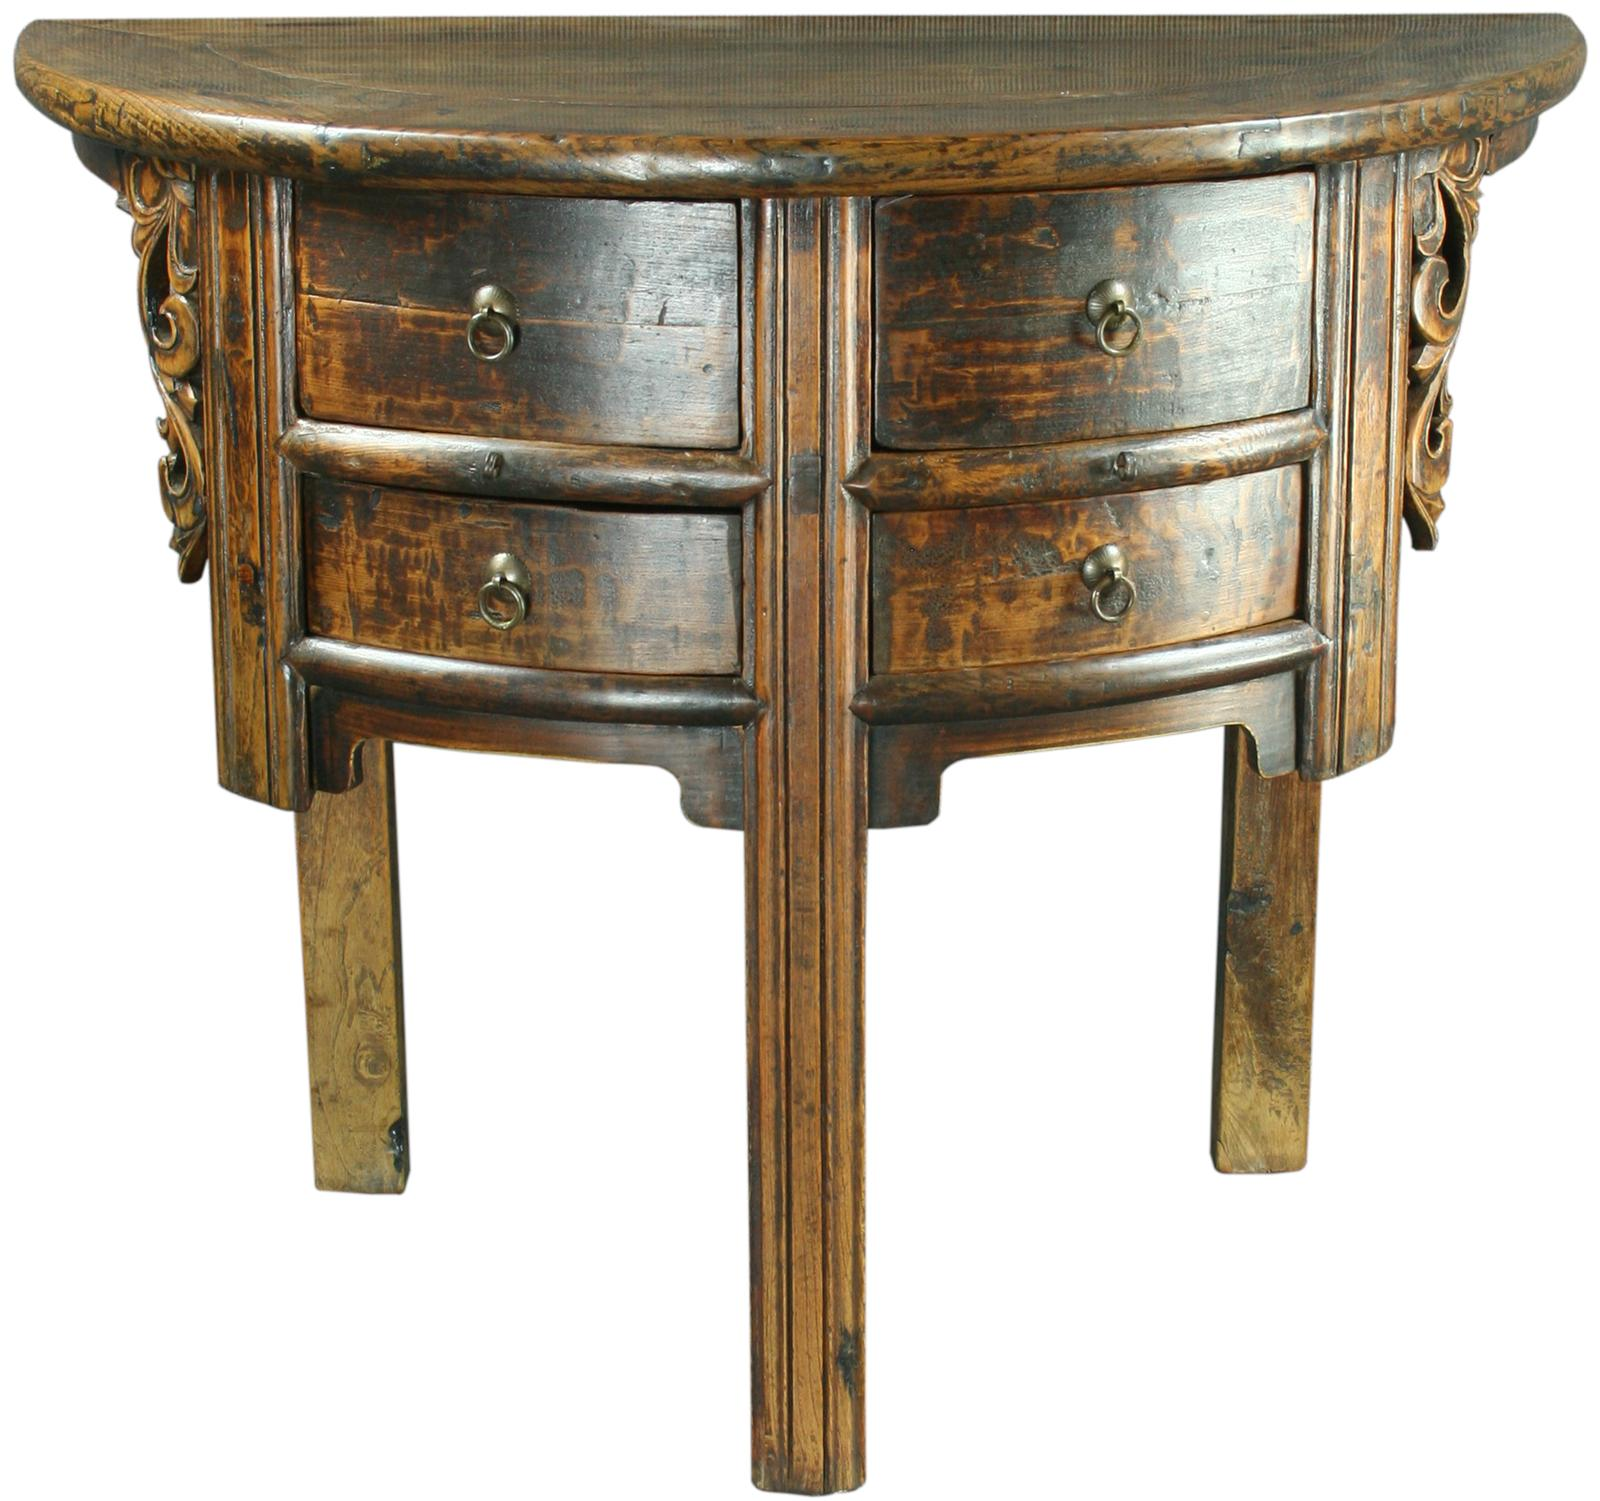 antique chinese half moon semicircular accent table rattan oak narrow hallway gold legs porch furniture clearance pink tablecloth modern replica colorful coffee tables target kids